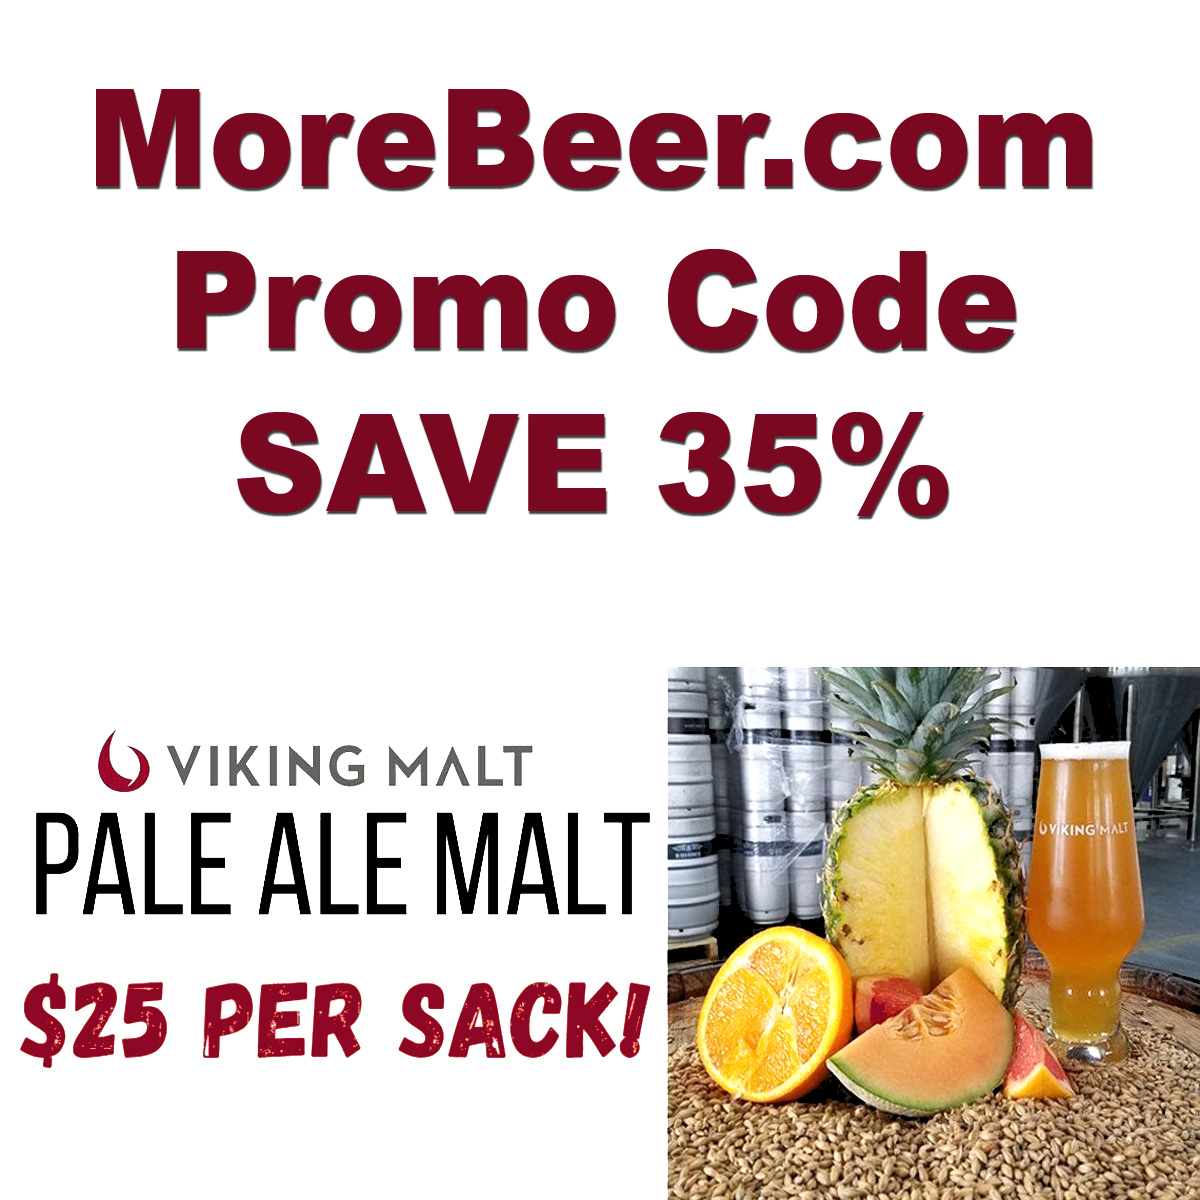 MoreBeer Get a 55 LBS Sack of Viking Pale Ale Malt for Just $25 at MoreBeer.com With Promo Code Coupon Code